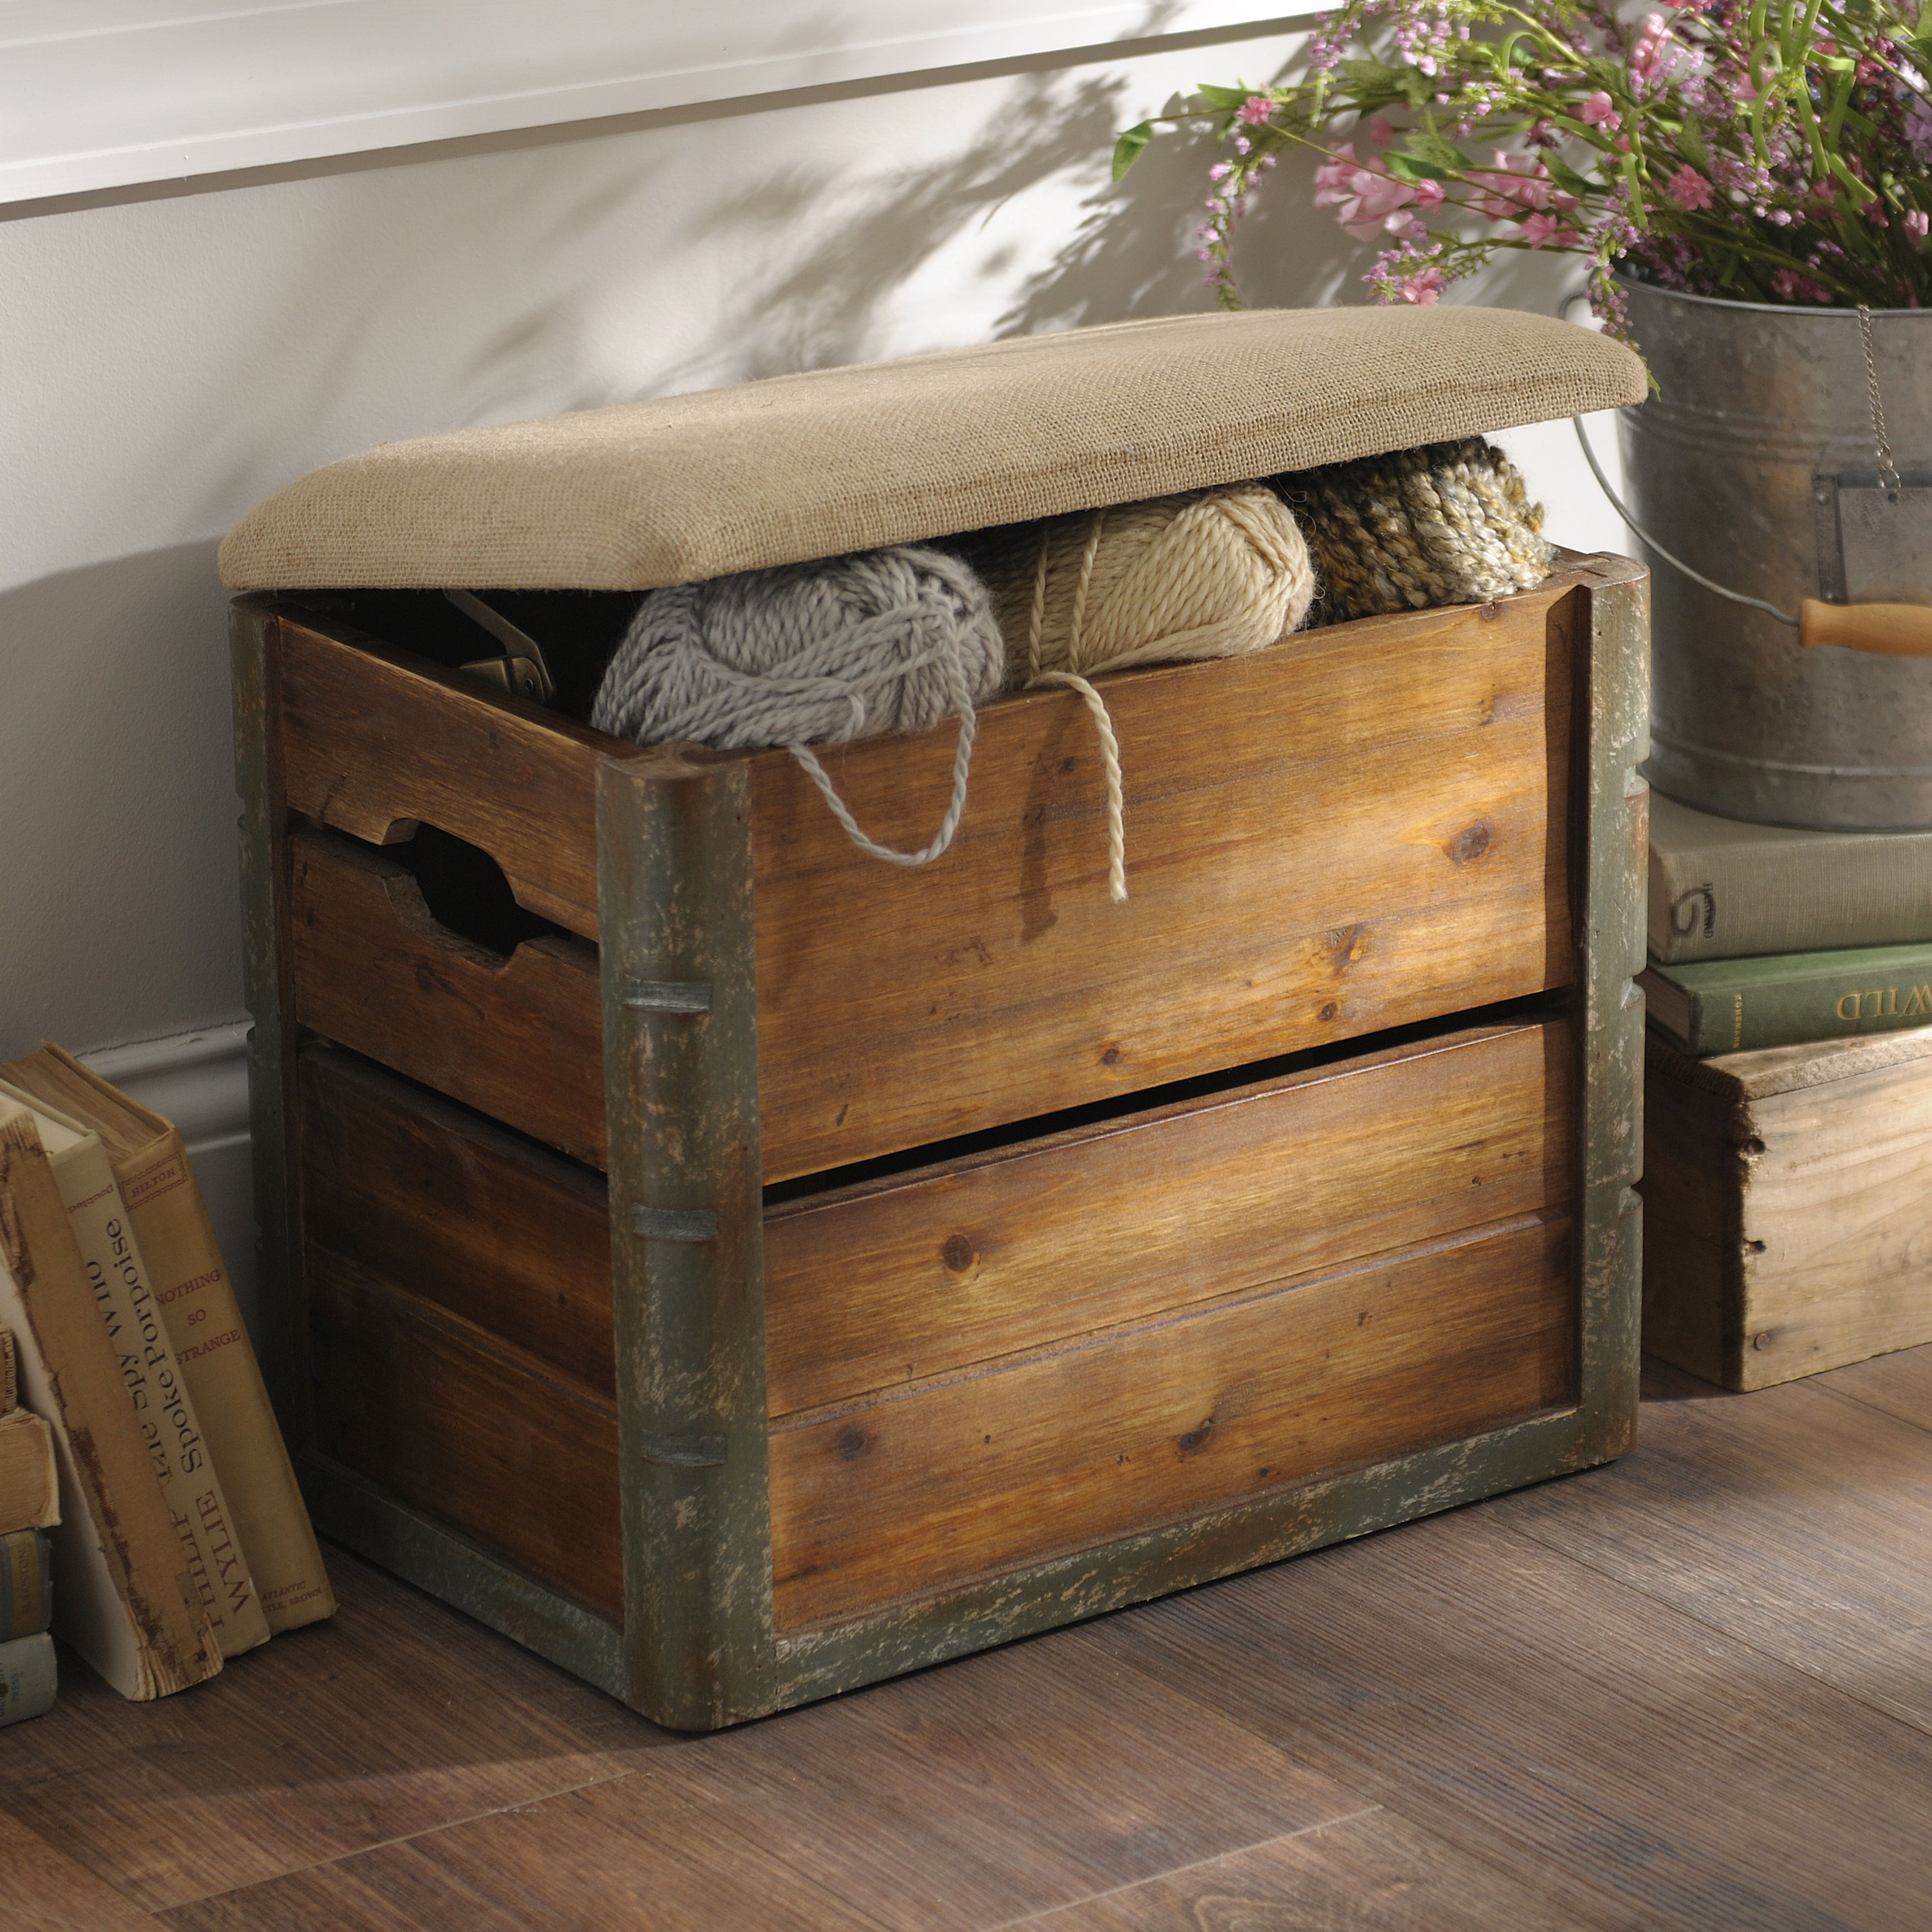 We Canu0027t Get Enough Of This Wooden Crate Storage Ottoman! The Rustic Styling